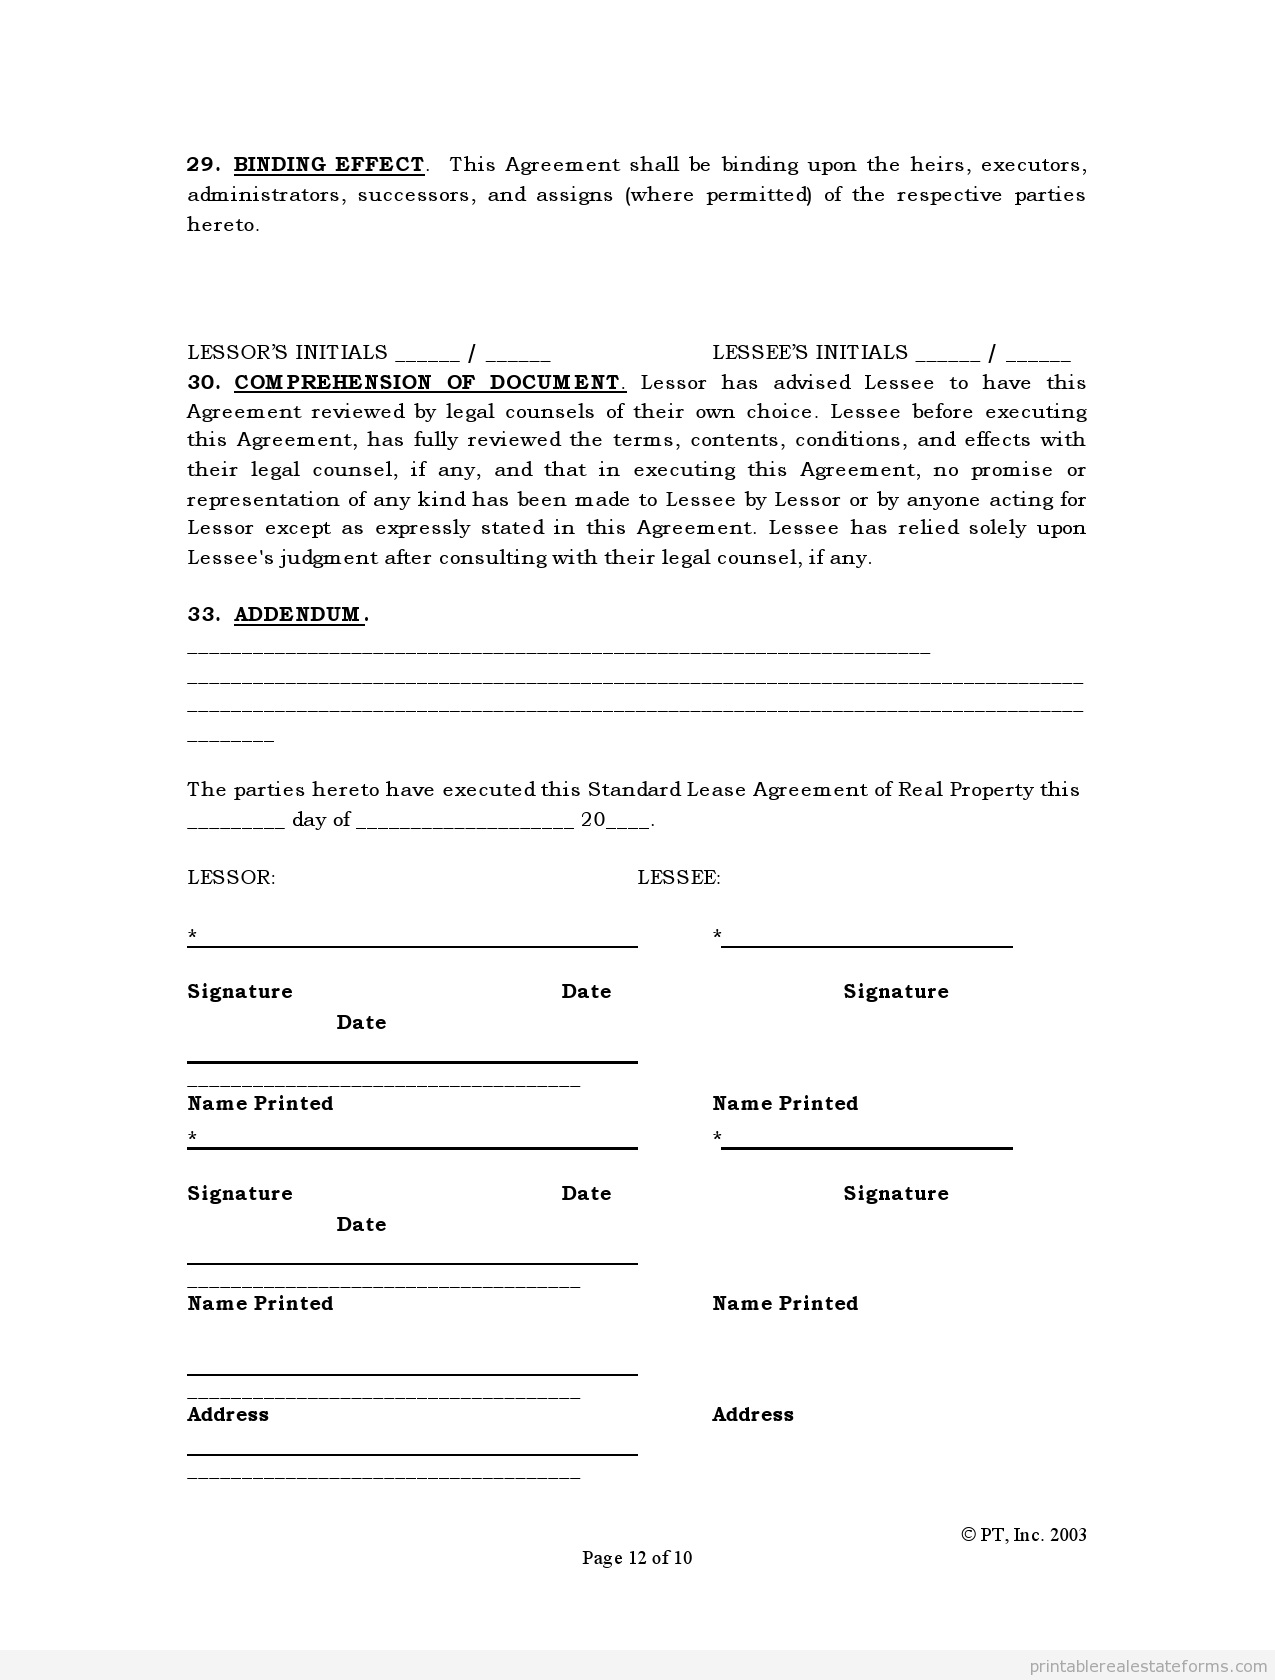 FREE Standard Lease Agreement FORM | Printable Real Estate ...